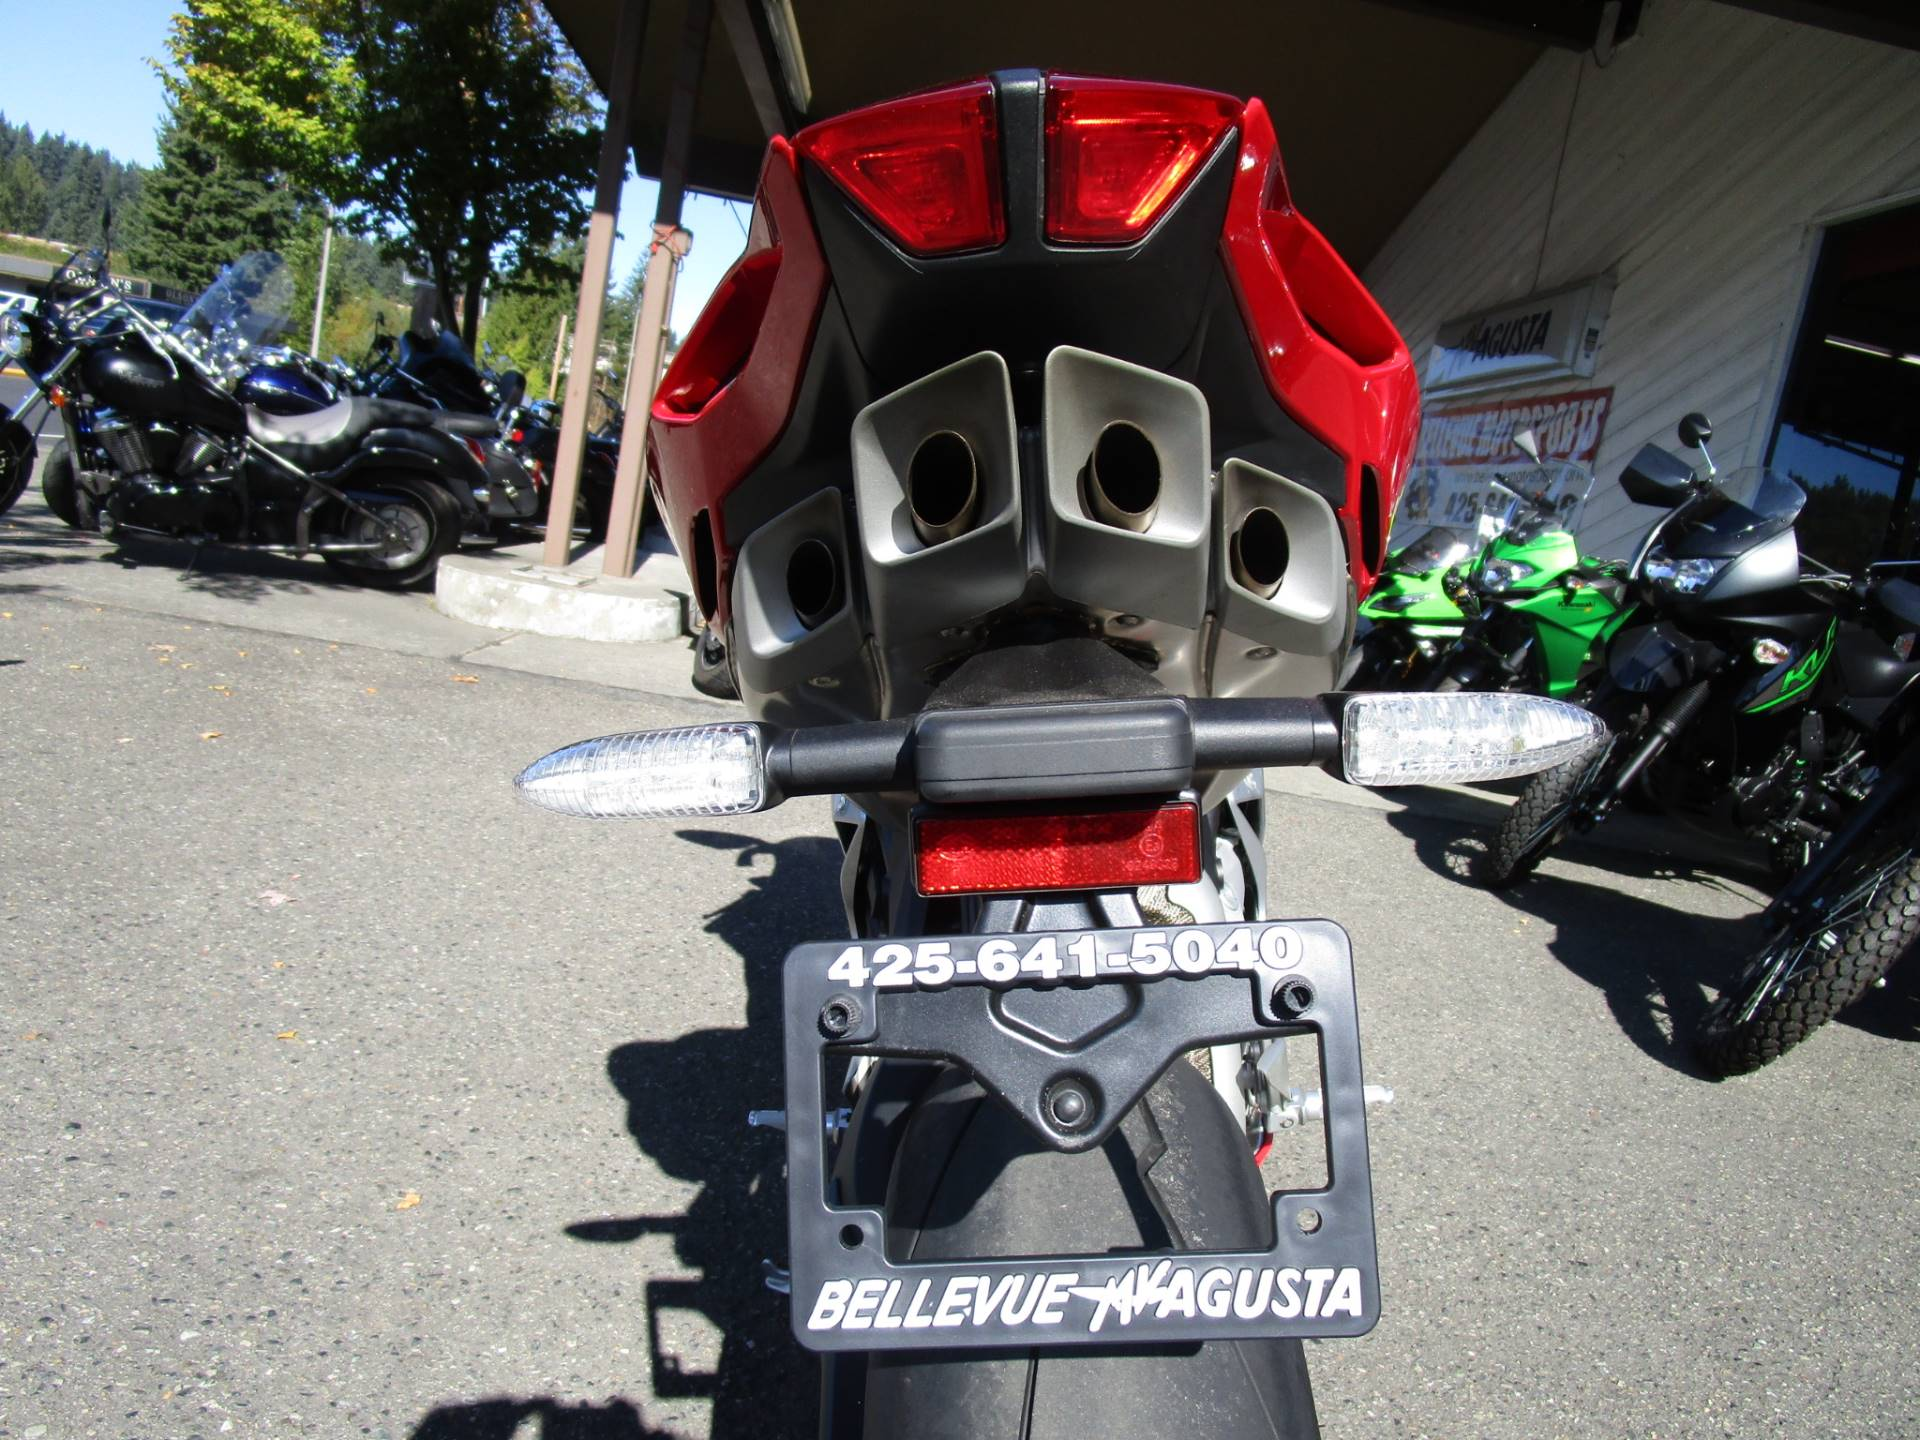 2014 MV Agusta F4 ABS in Bellevue, Washington